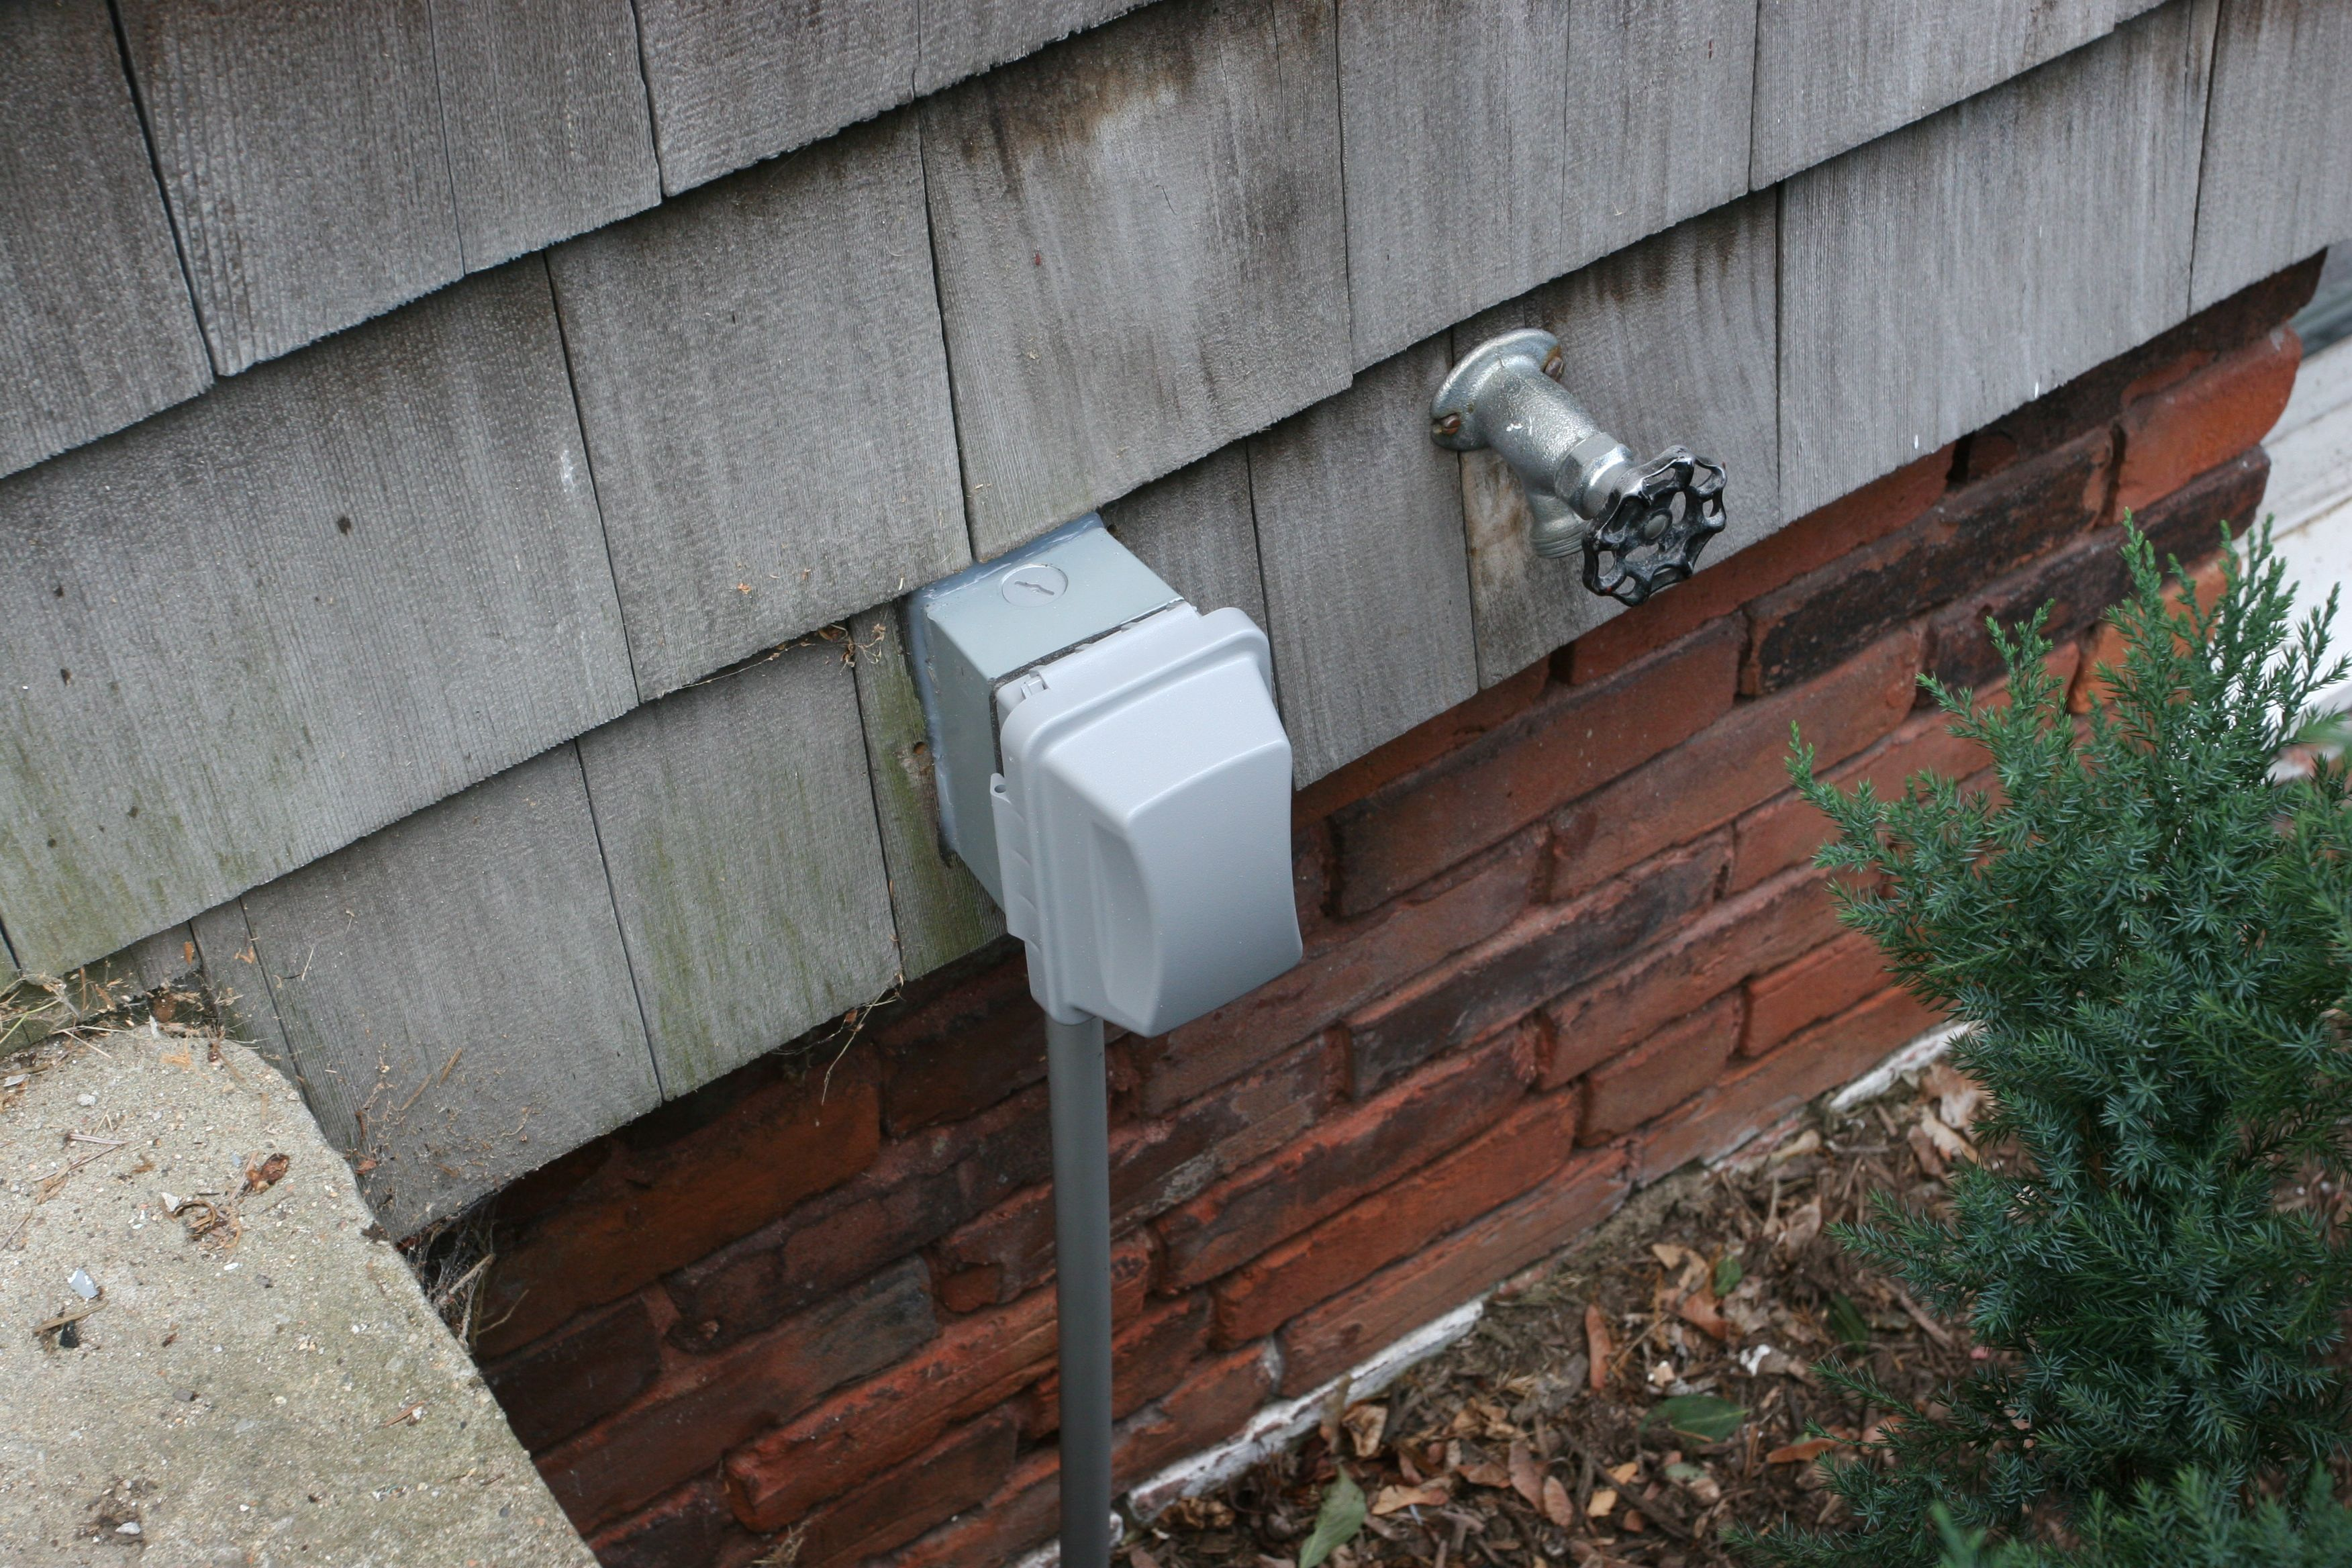 Safe, weather-safe outlet for the front of the house.